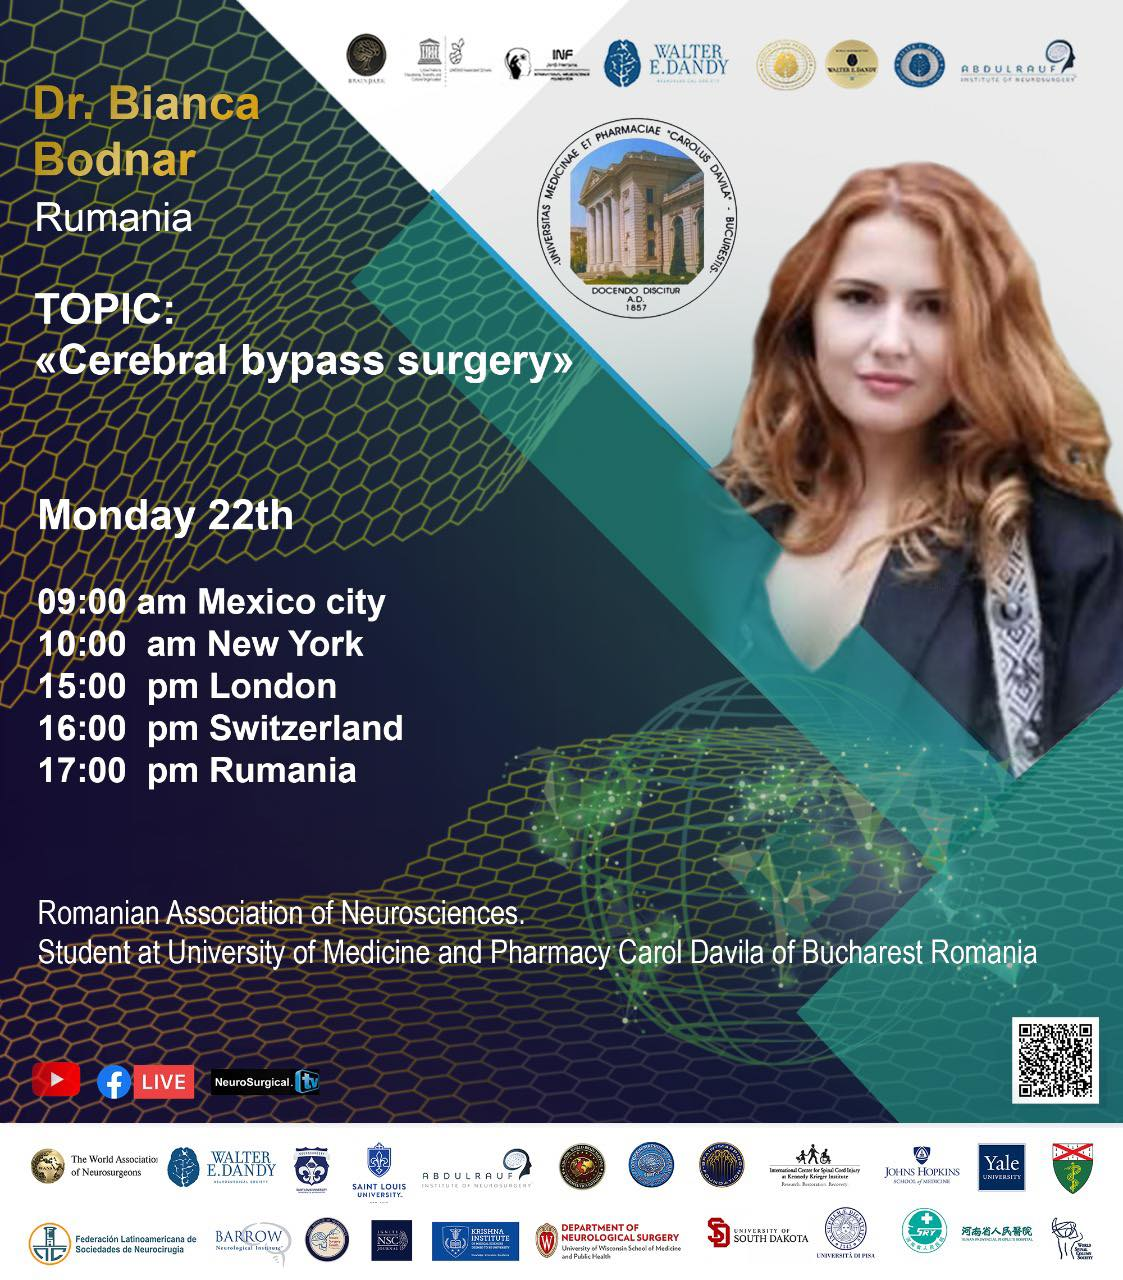 "NOW LIVE, Dr. Bianca Bodnar: ""Celebral bypass surgery"" from Mexico City in Walter Dandy/UNESCO Collaboration"